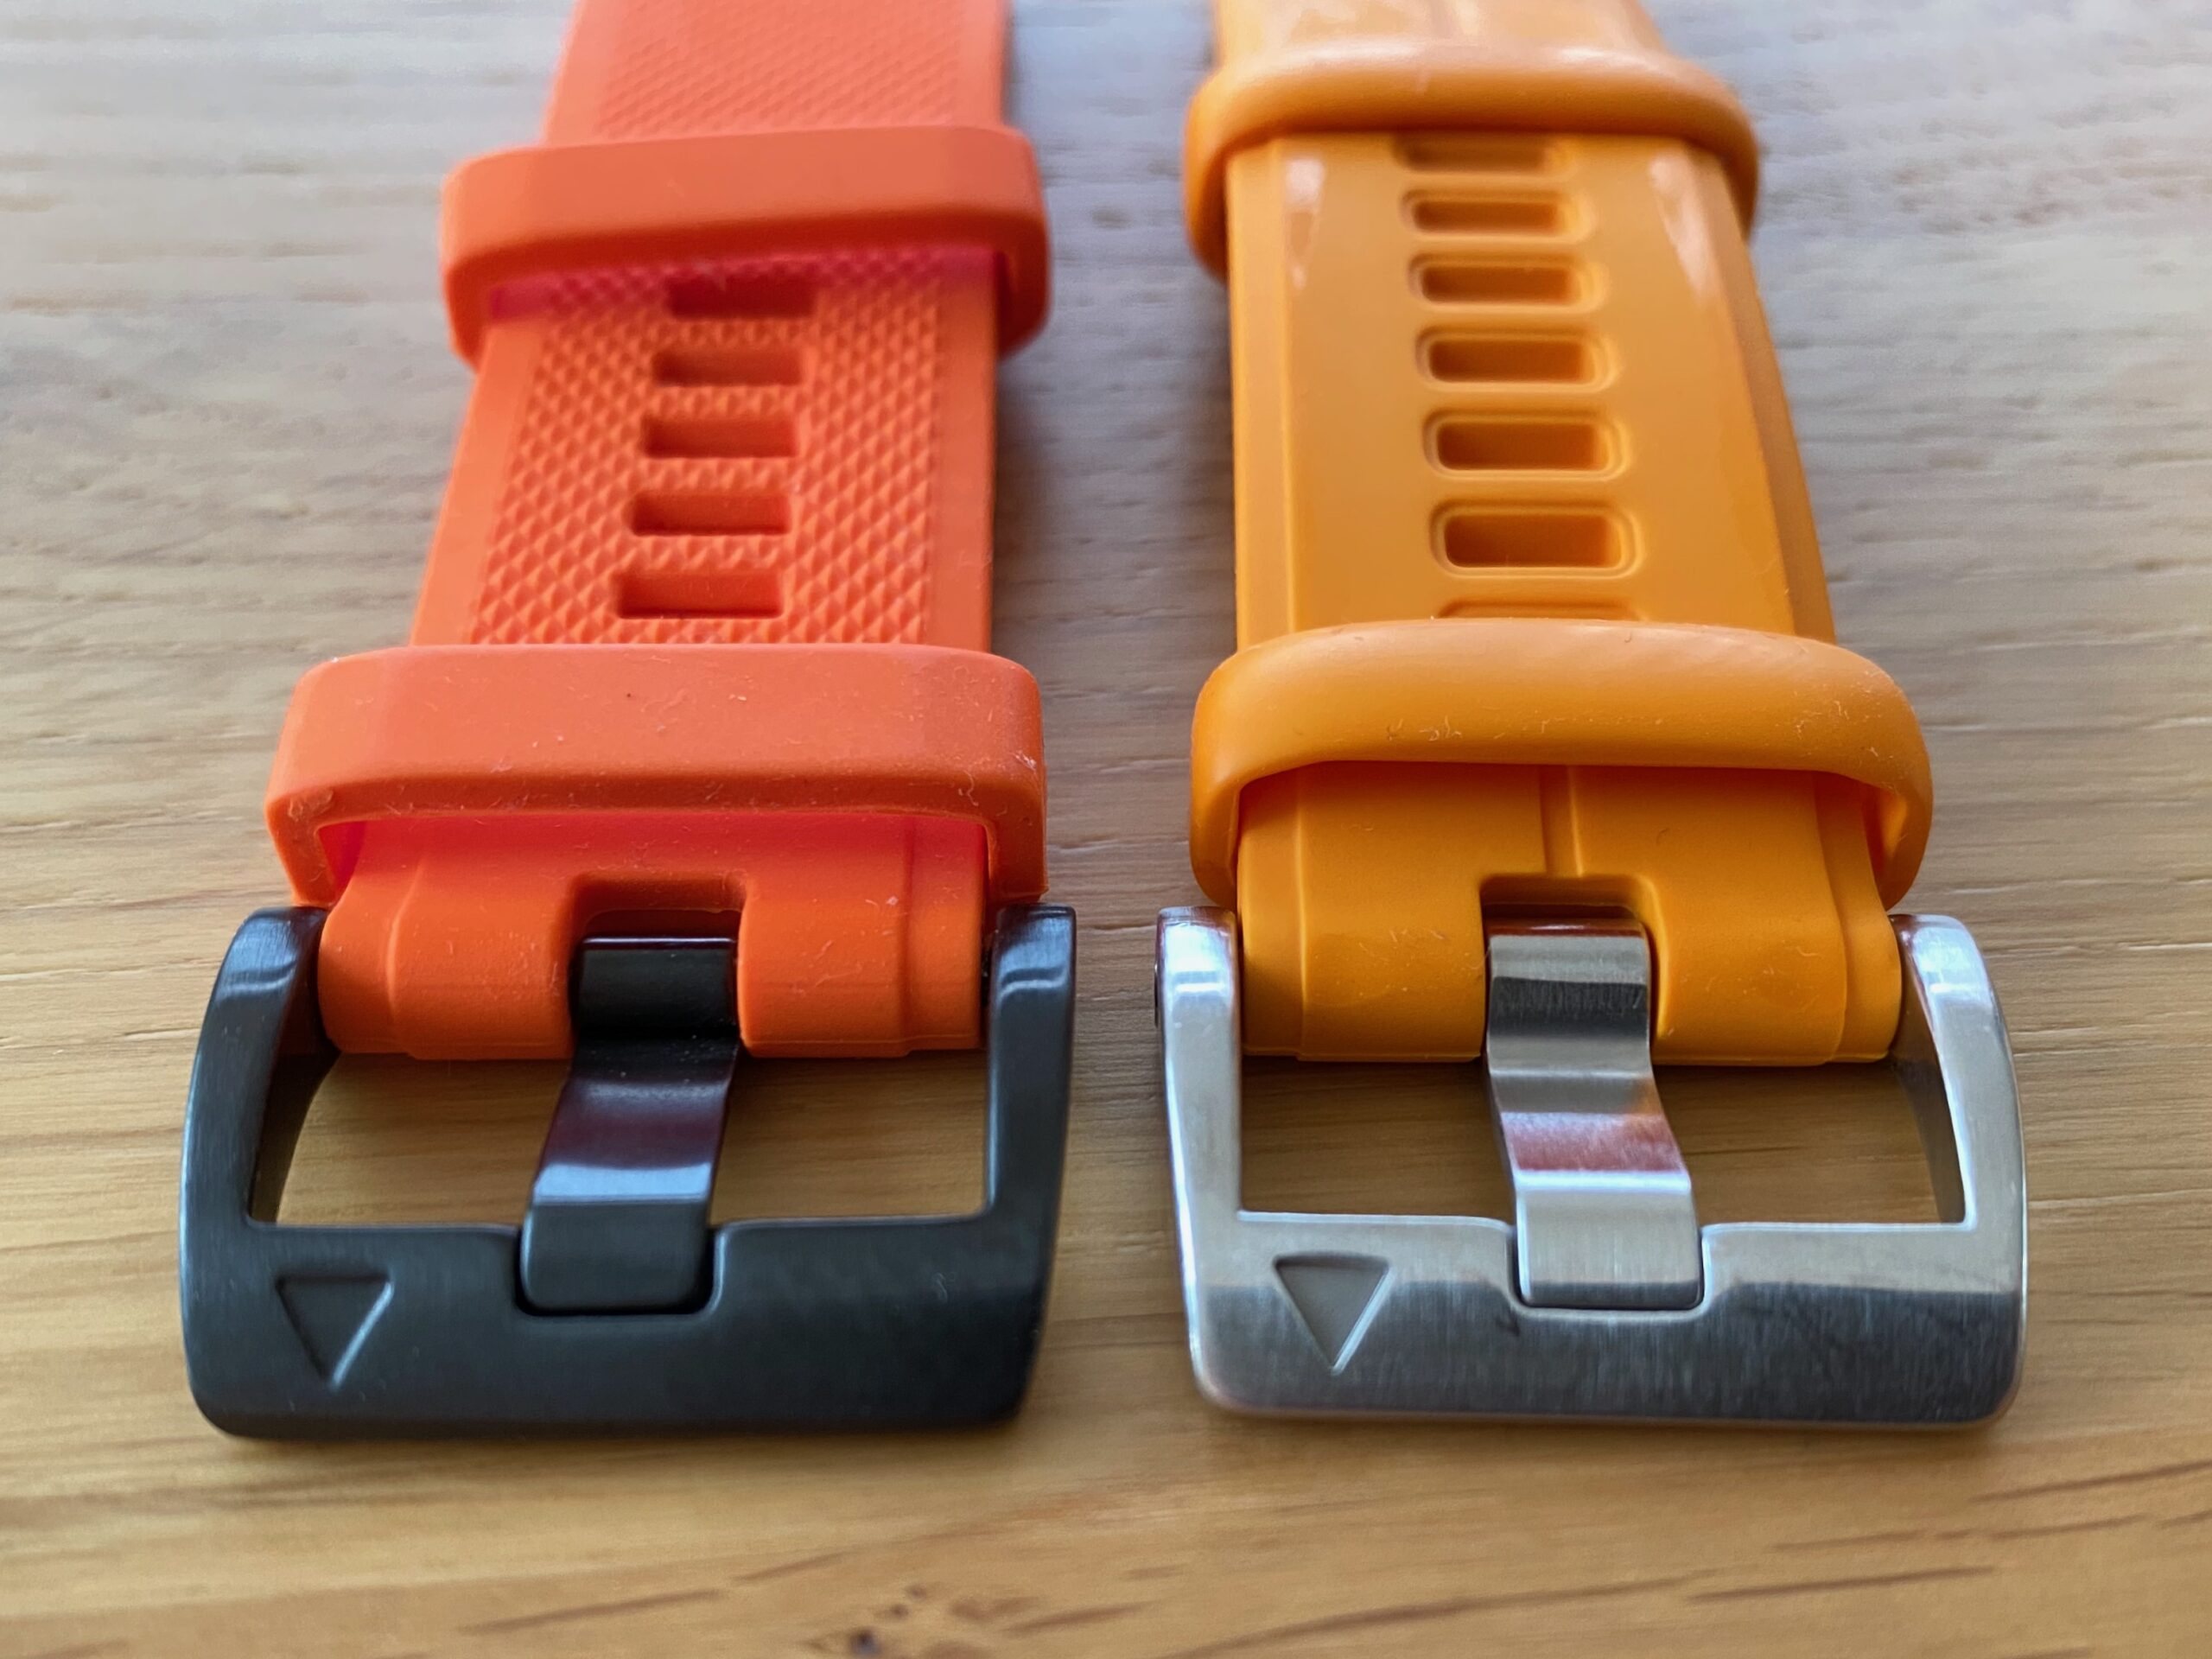 Comparison between buckles of OEM Garmin Fenix watch band and aftermarket copy